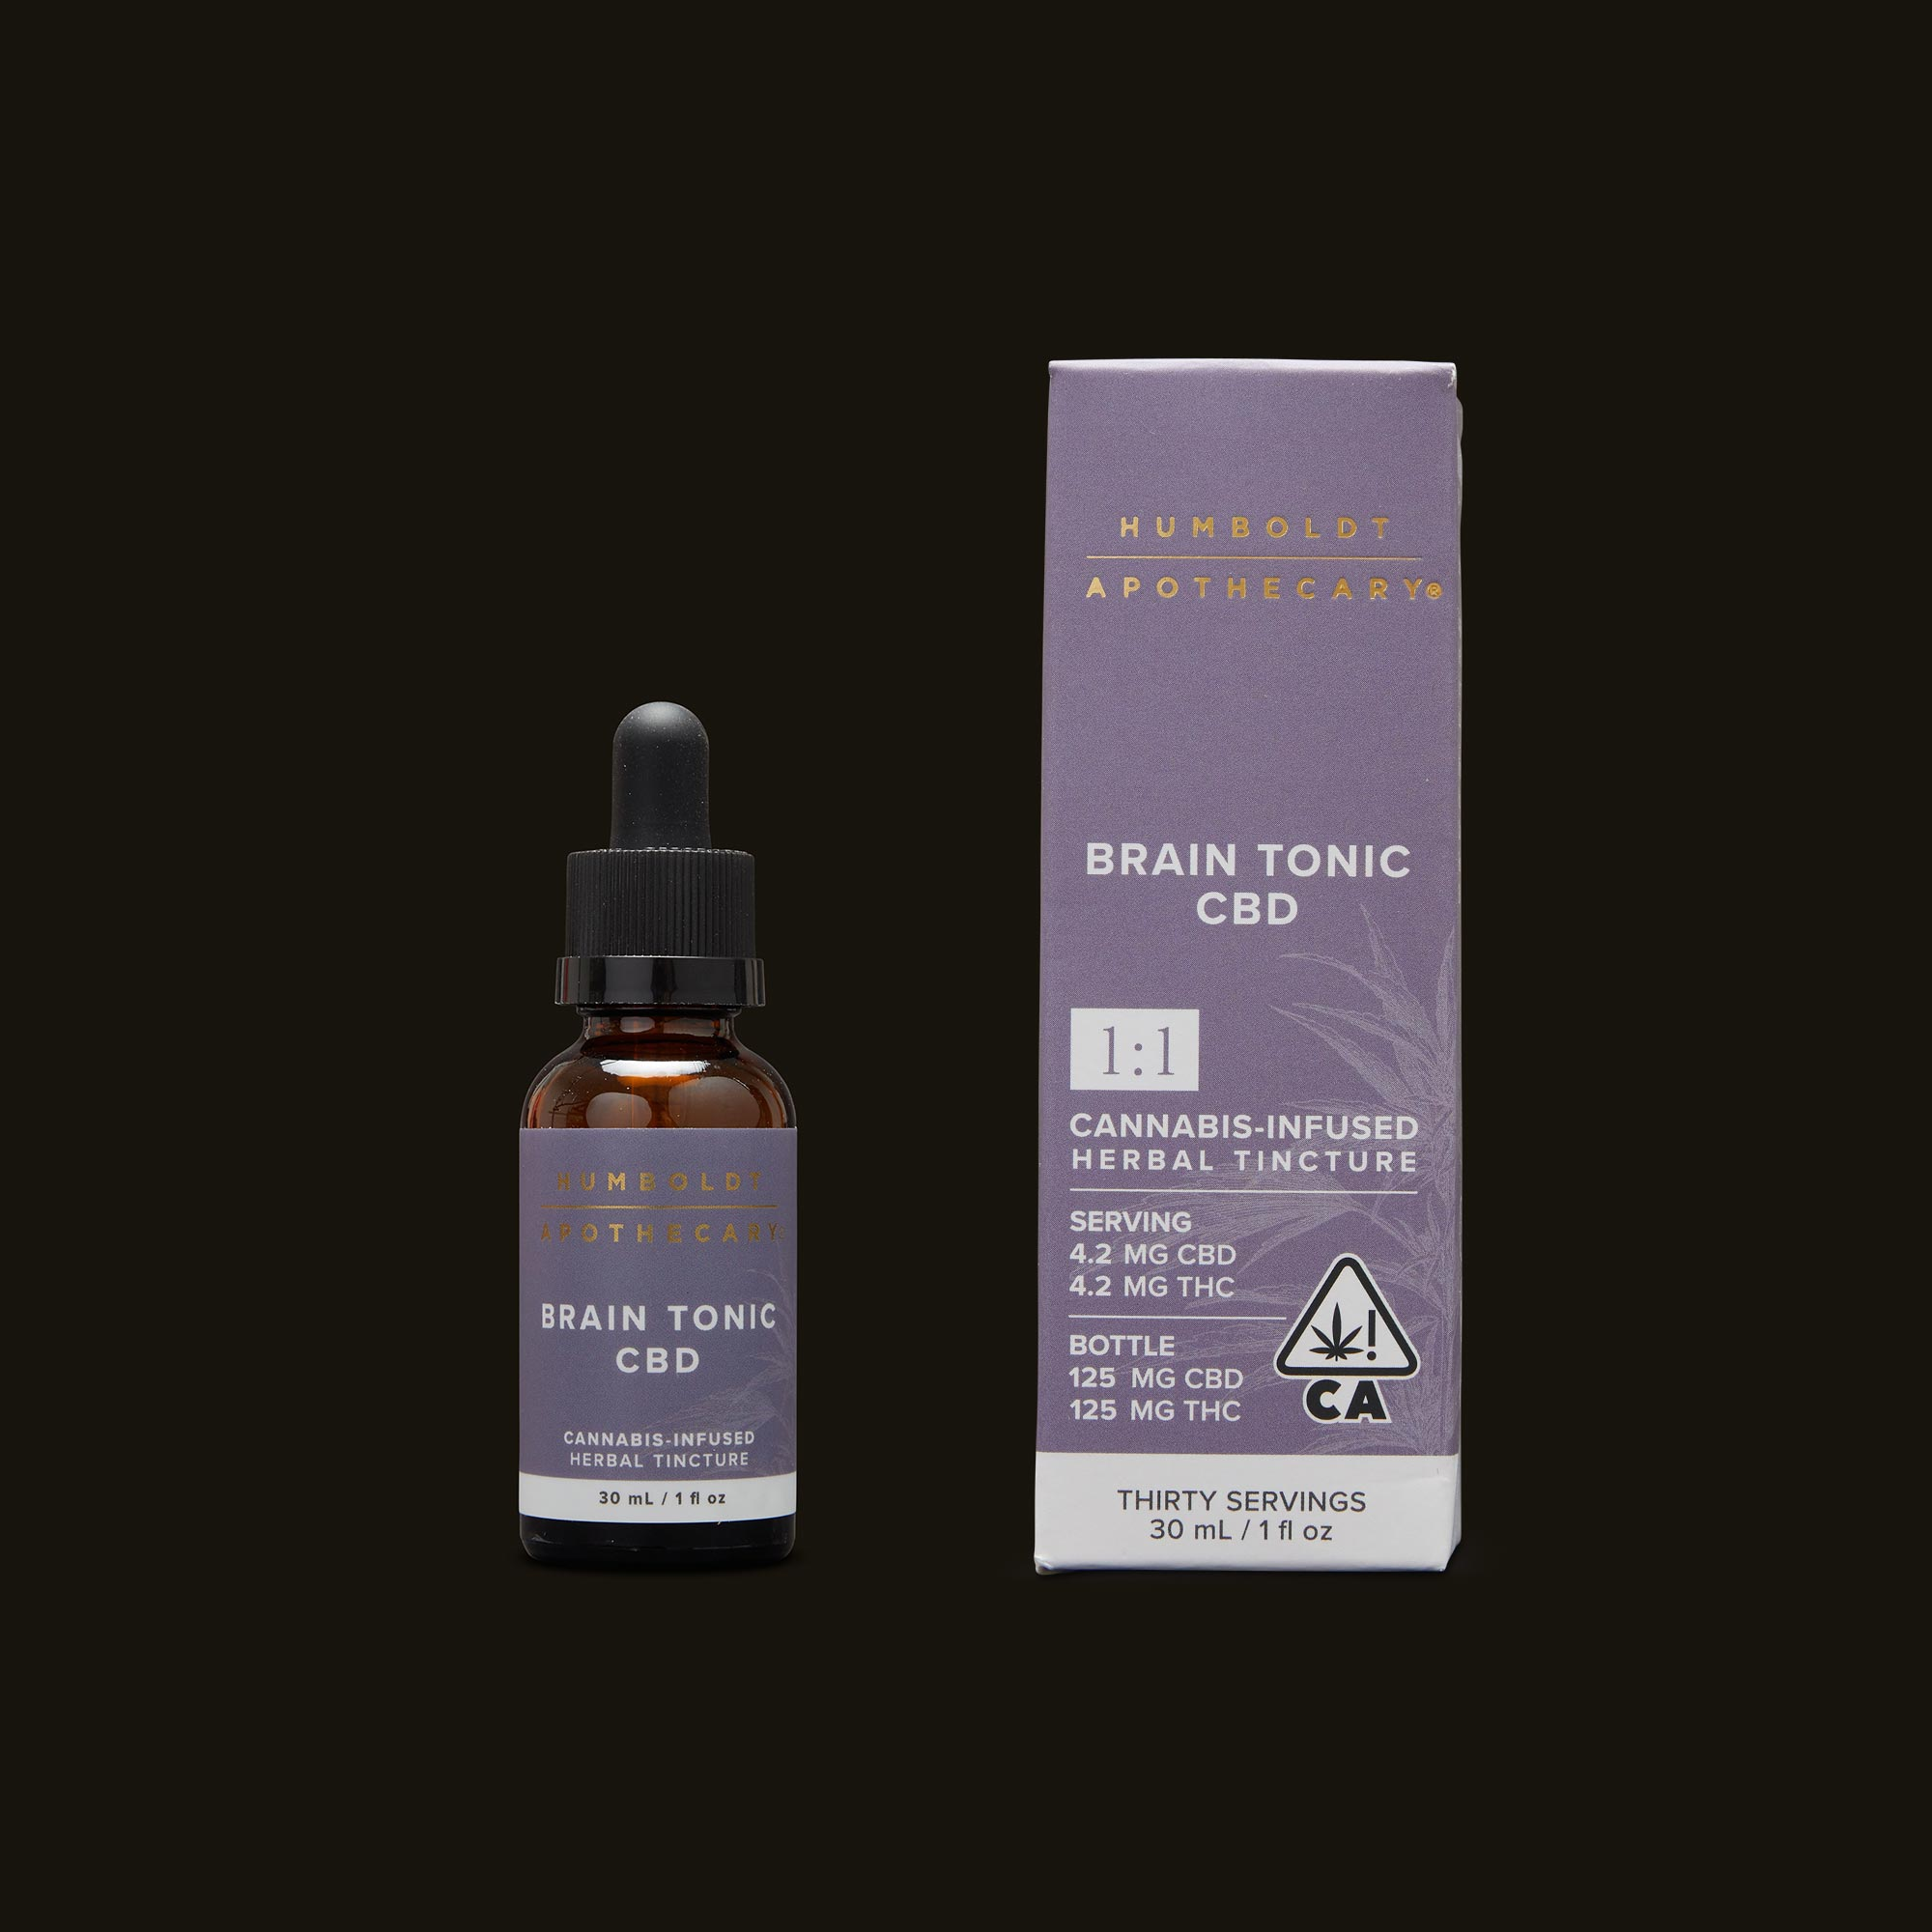 Humboldt Apothecary Brain Tonic CBD 1:1 Tincture and Packaging